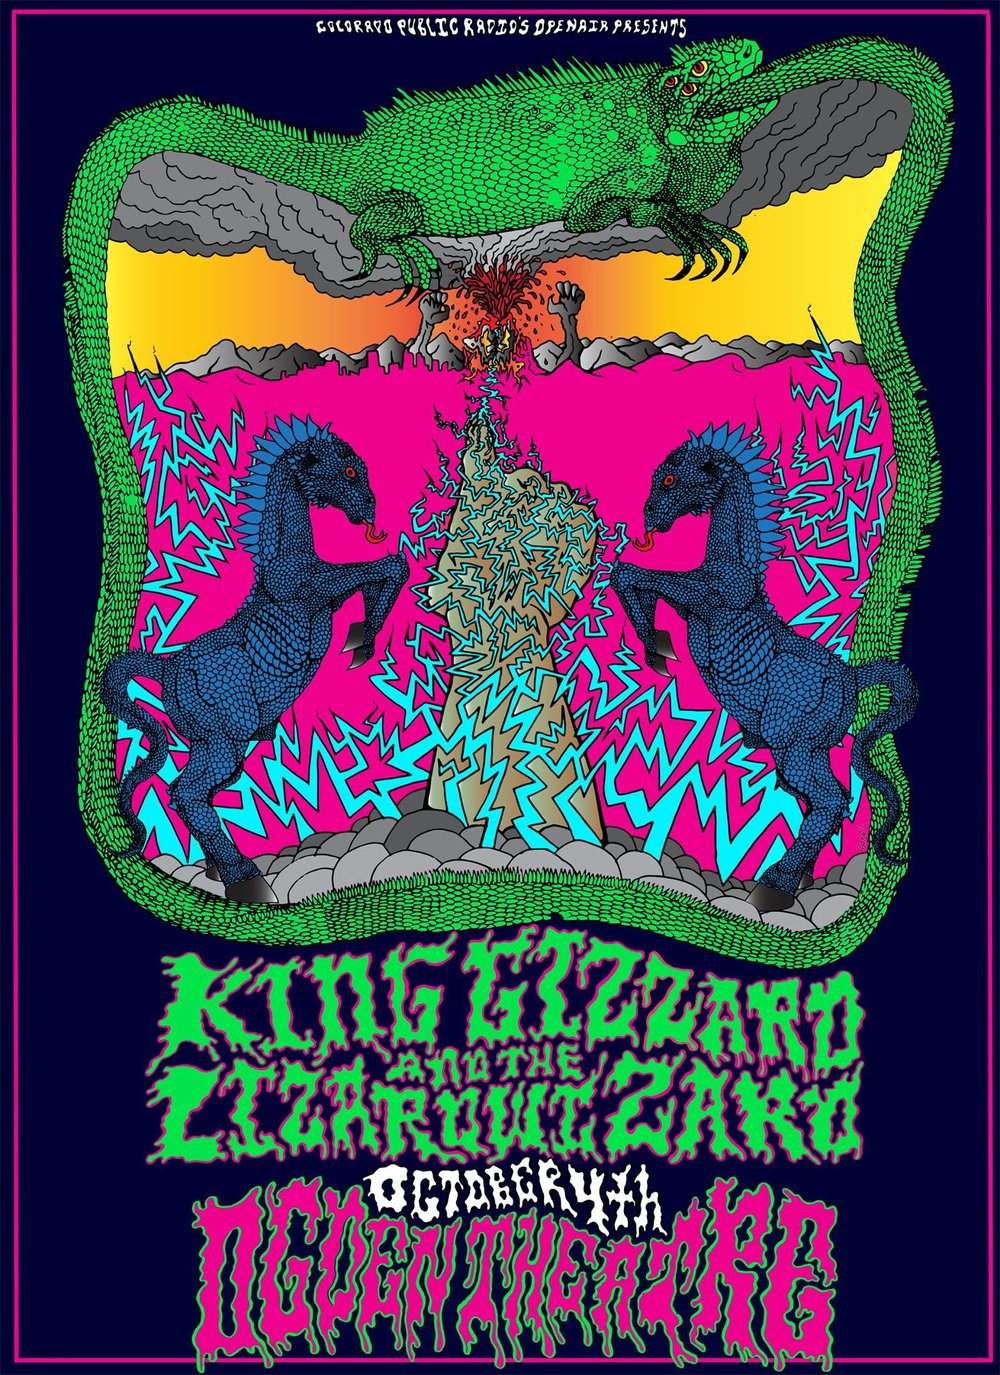 OTHER WORLDS AT THE OGDEN THEATRE WITH KING GIZZARD